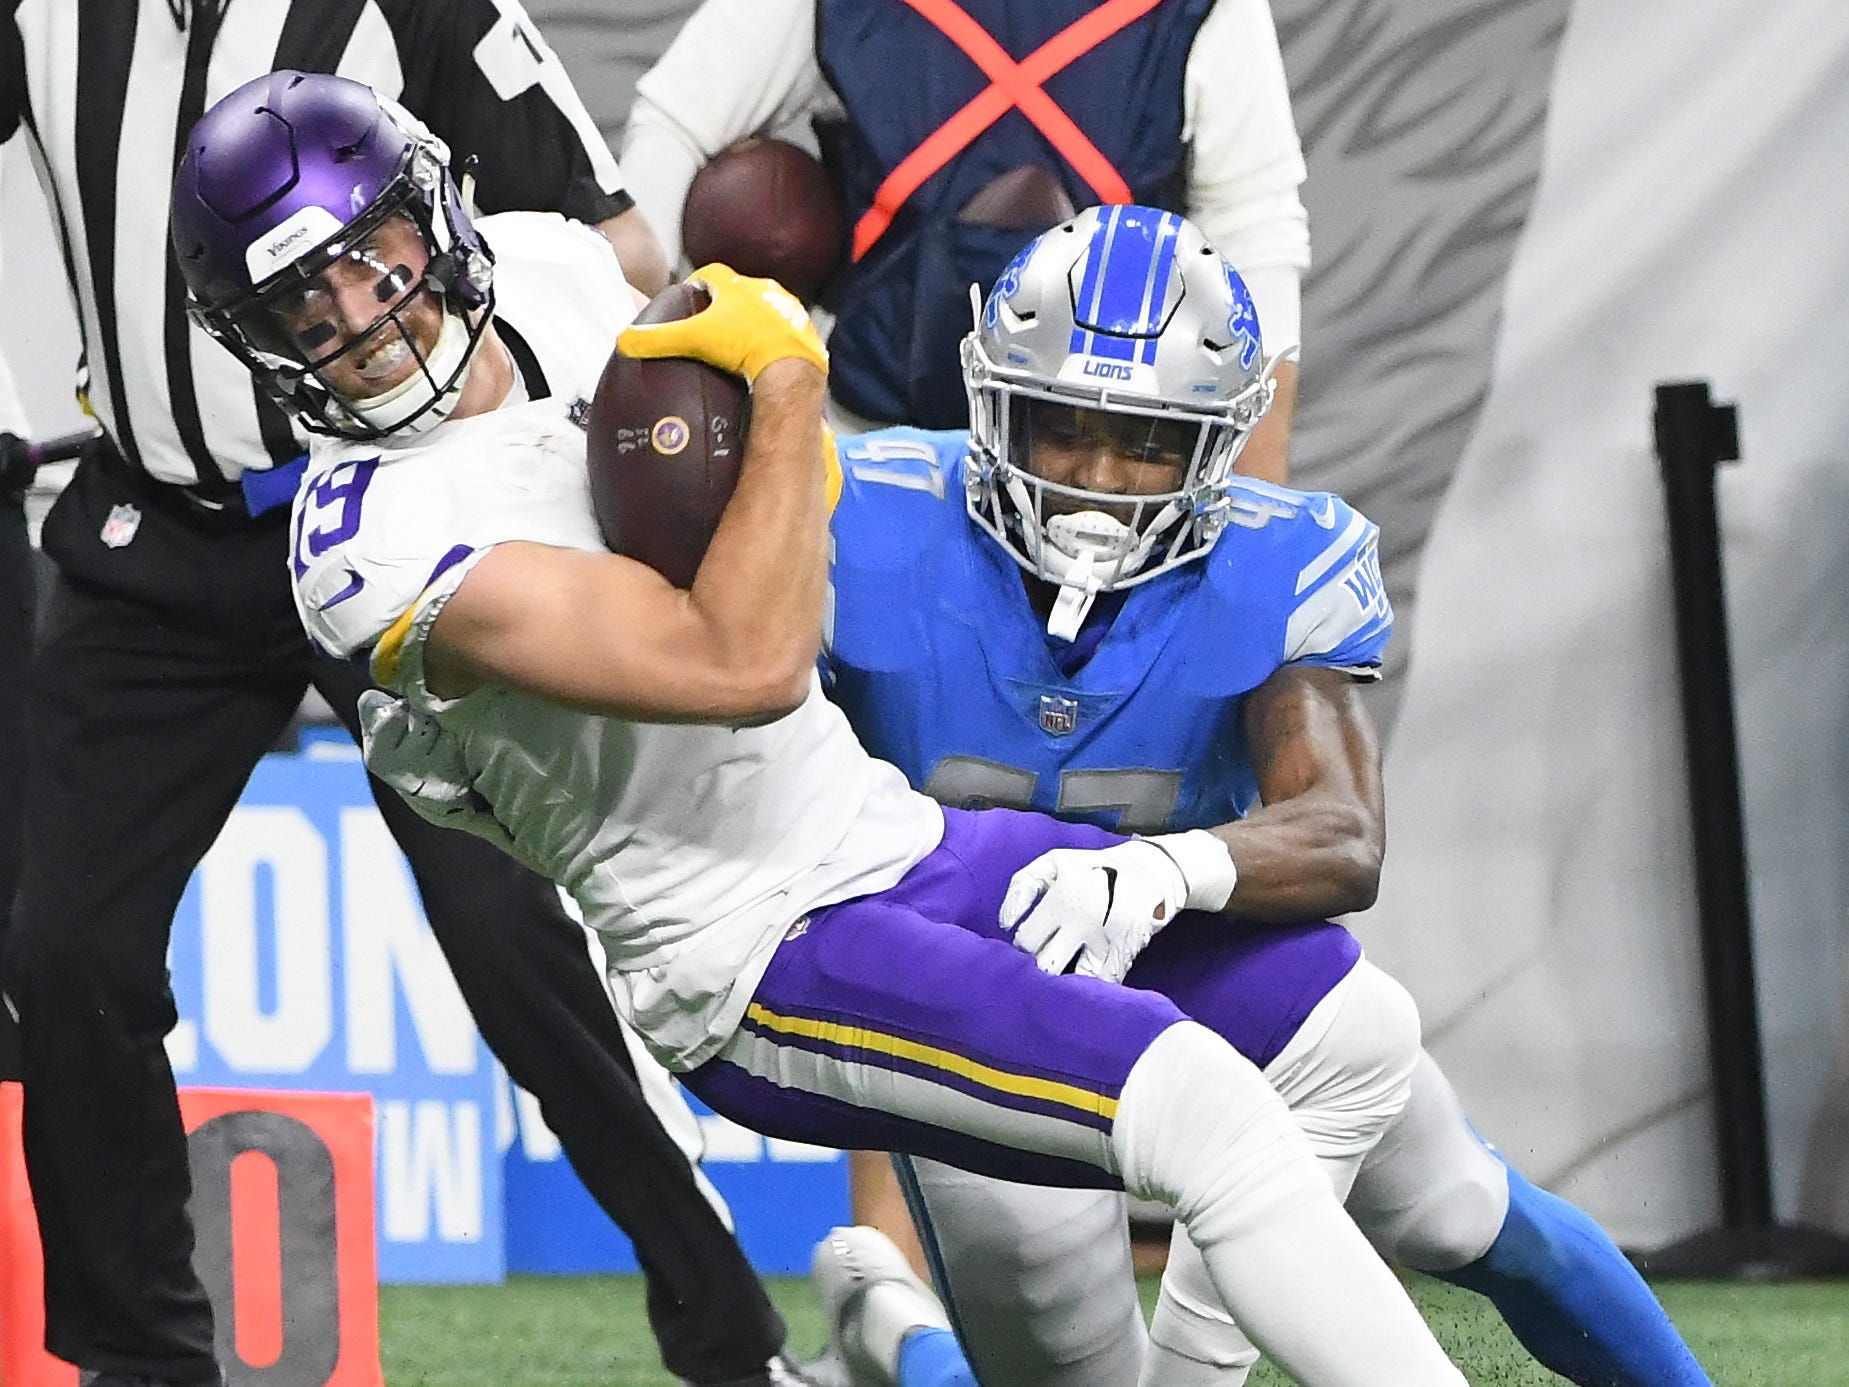 Vikings' Adam Thielen is brought down by Lions' Tracy Walker in the third quarter.